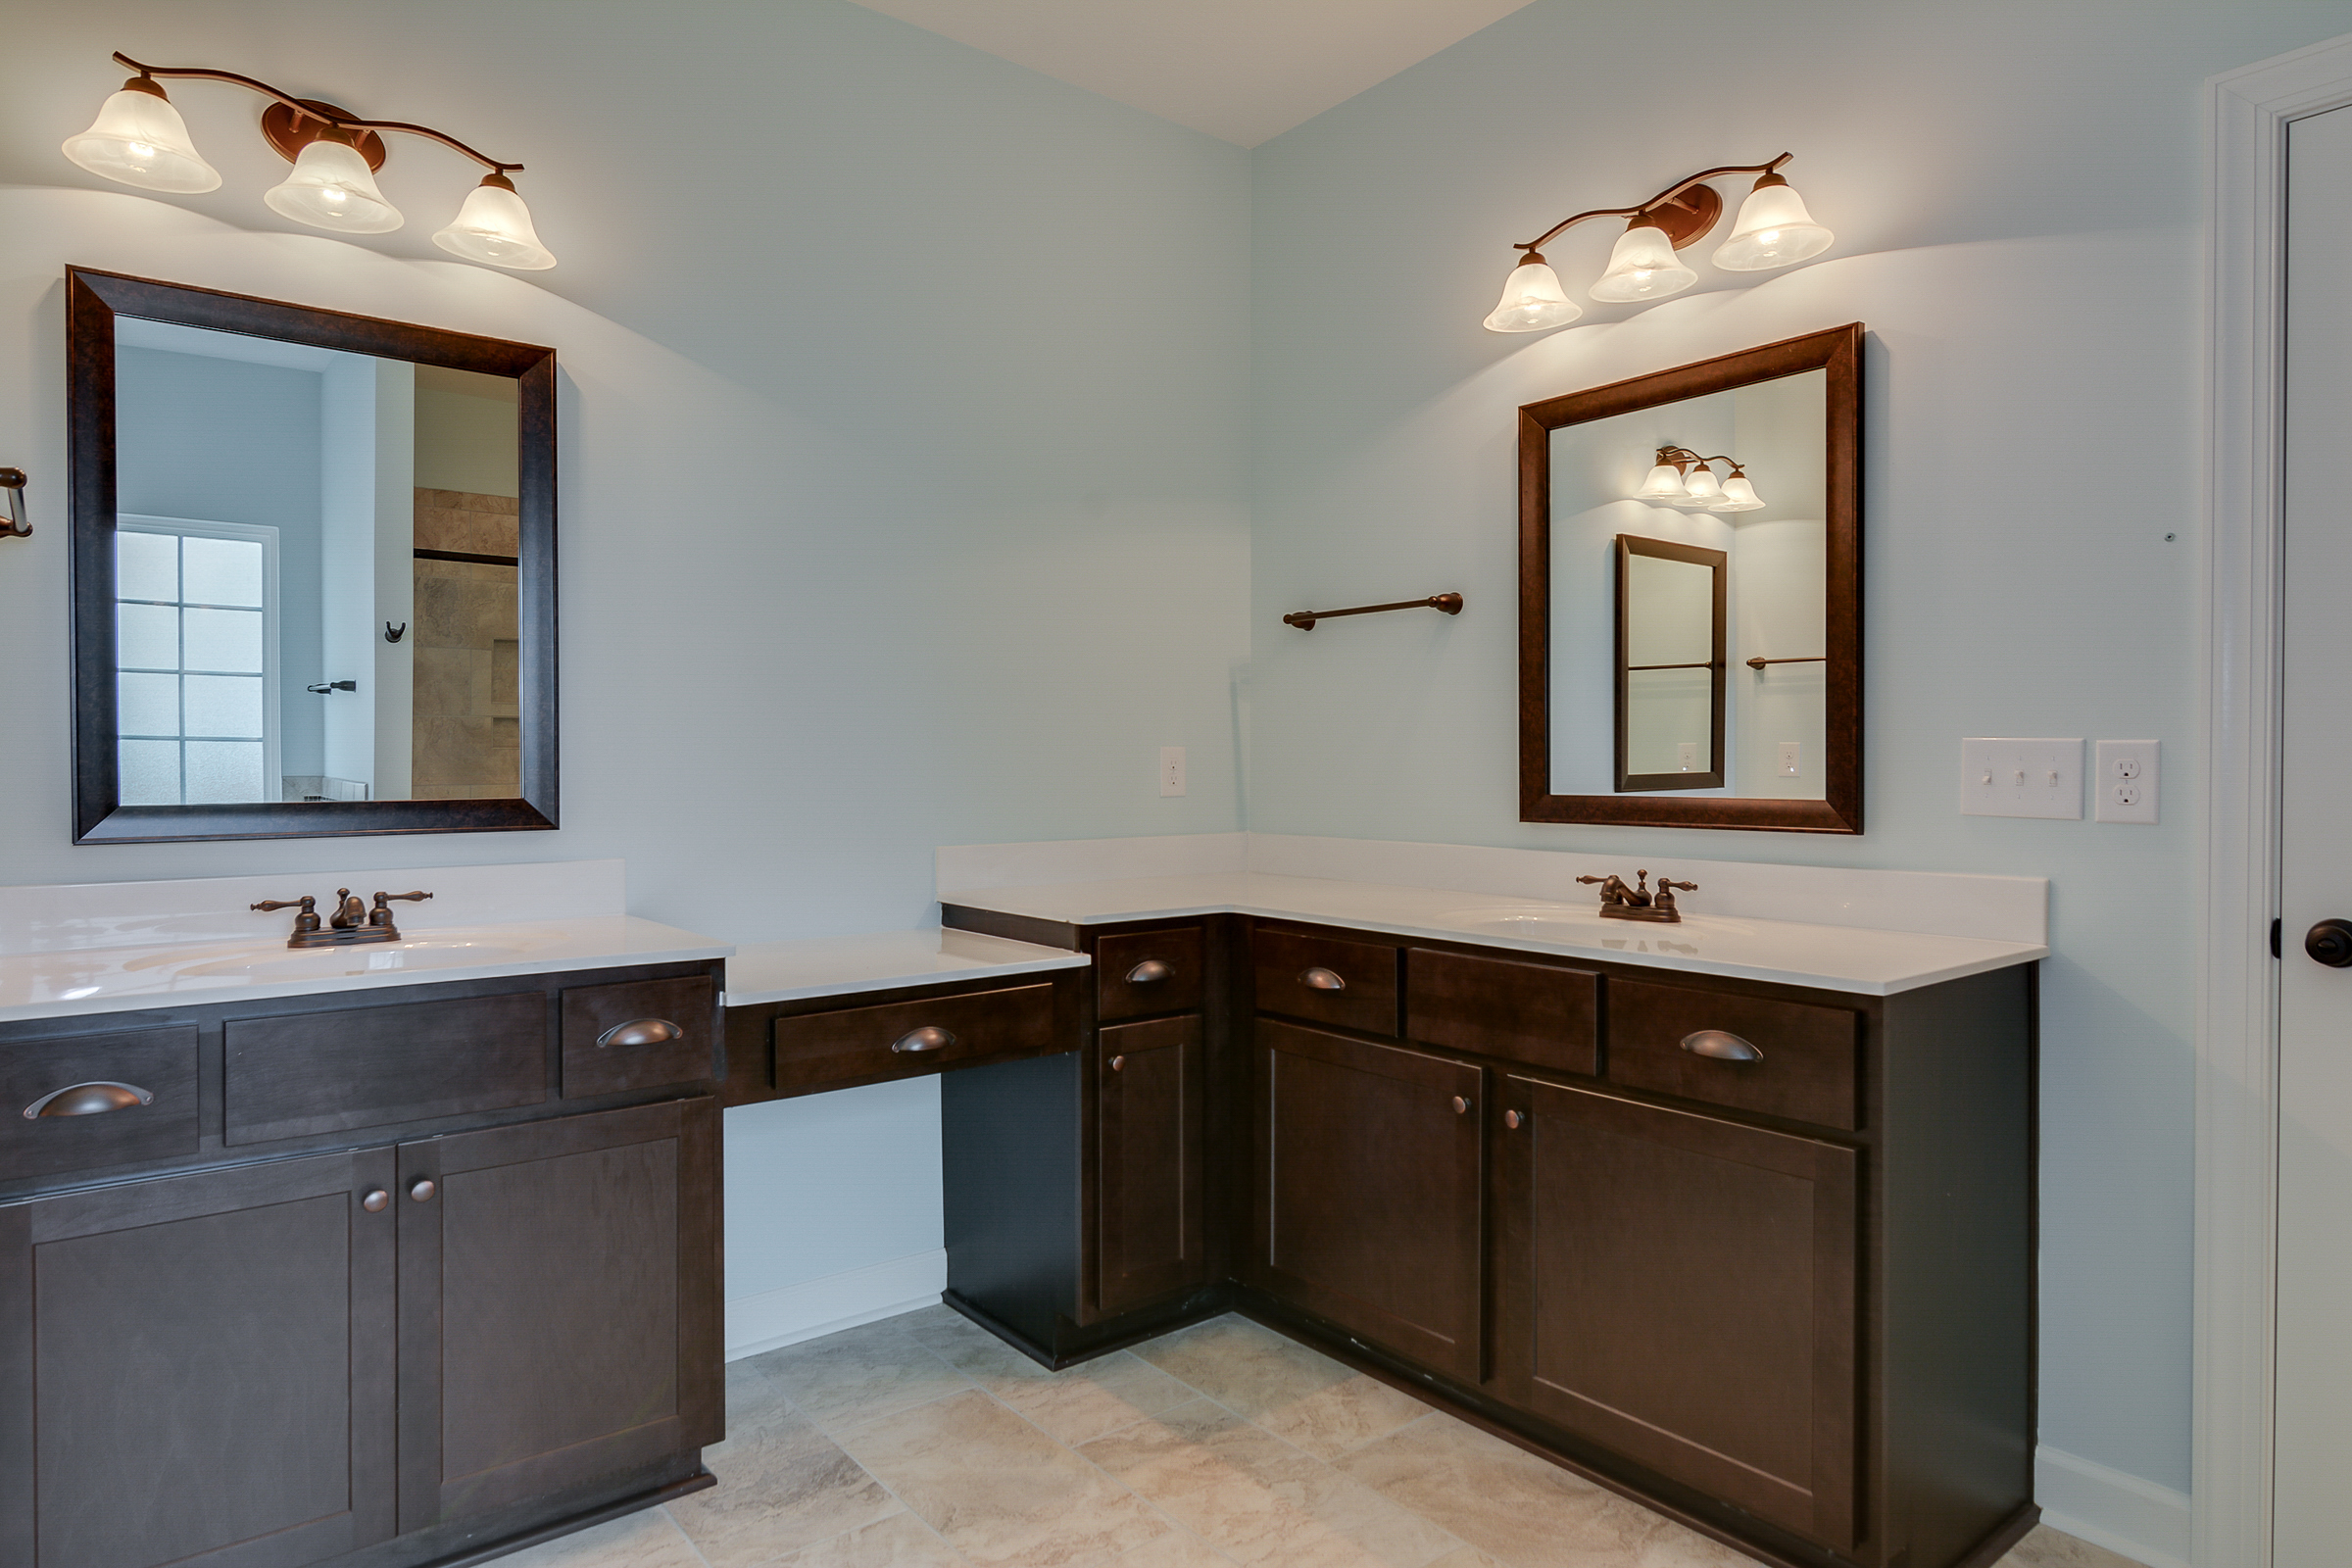 An image of his and her sinks at Bergen Place West Home.